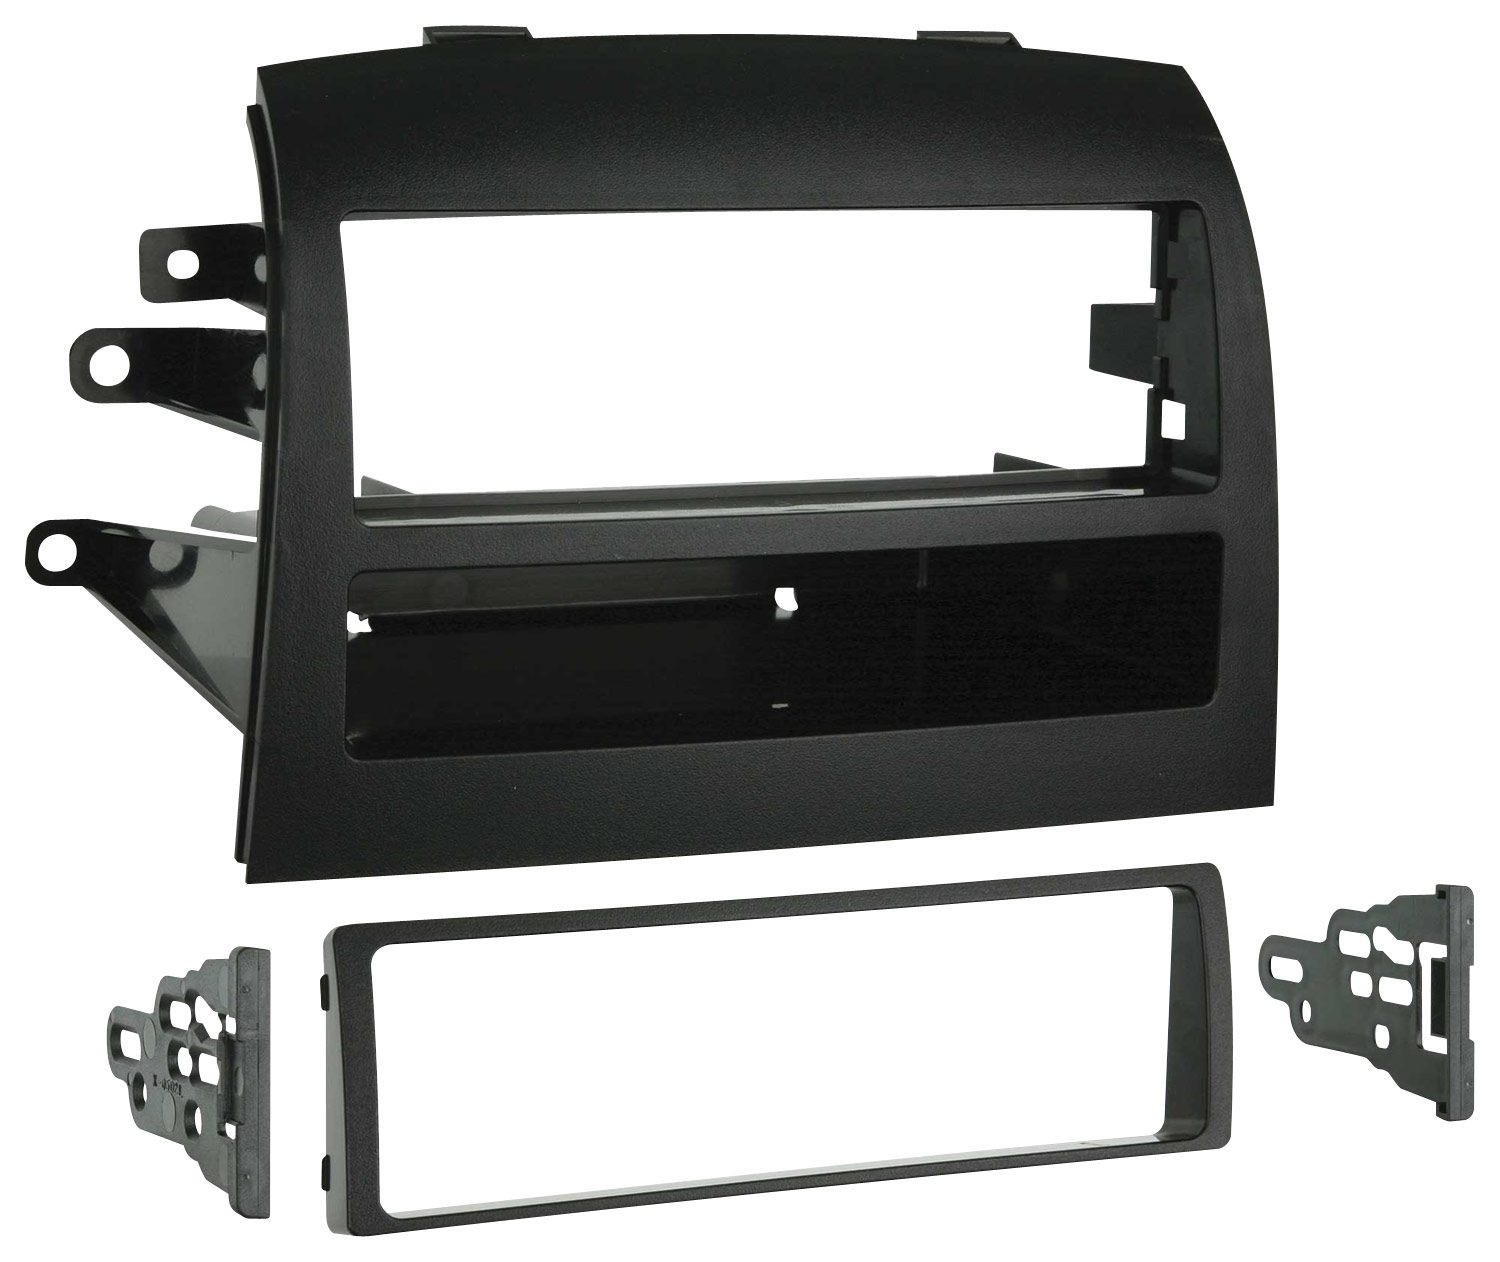 hight resolution of metra dash kit for select 2004 2010 toyota sienna black 99 8208 best buy